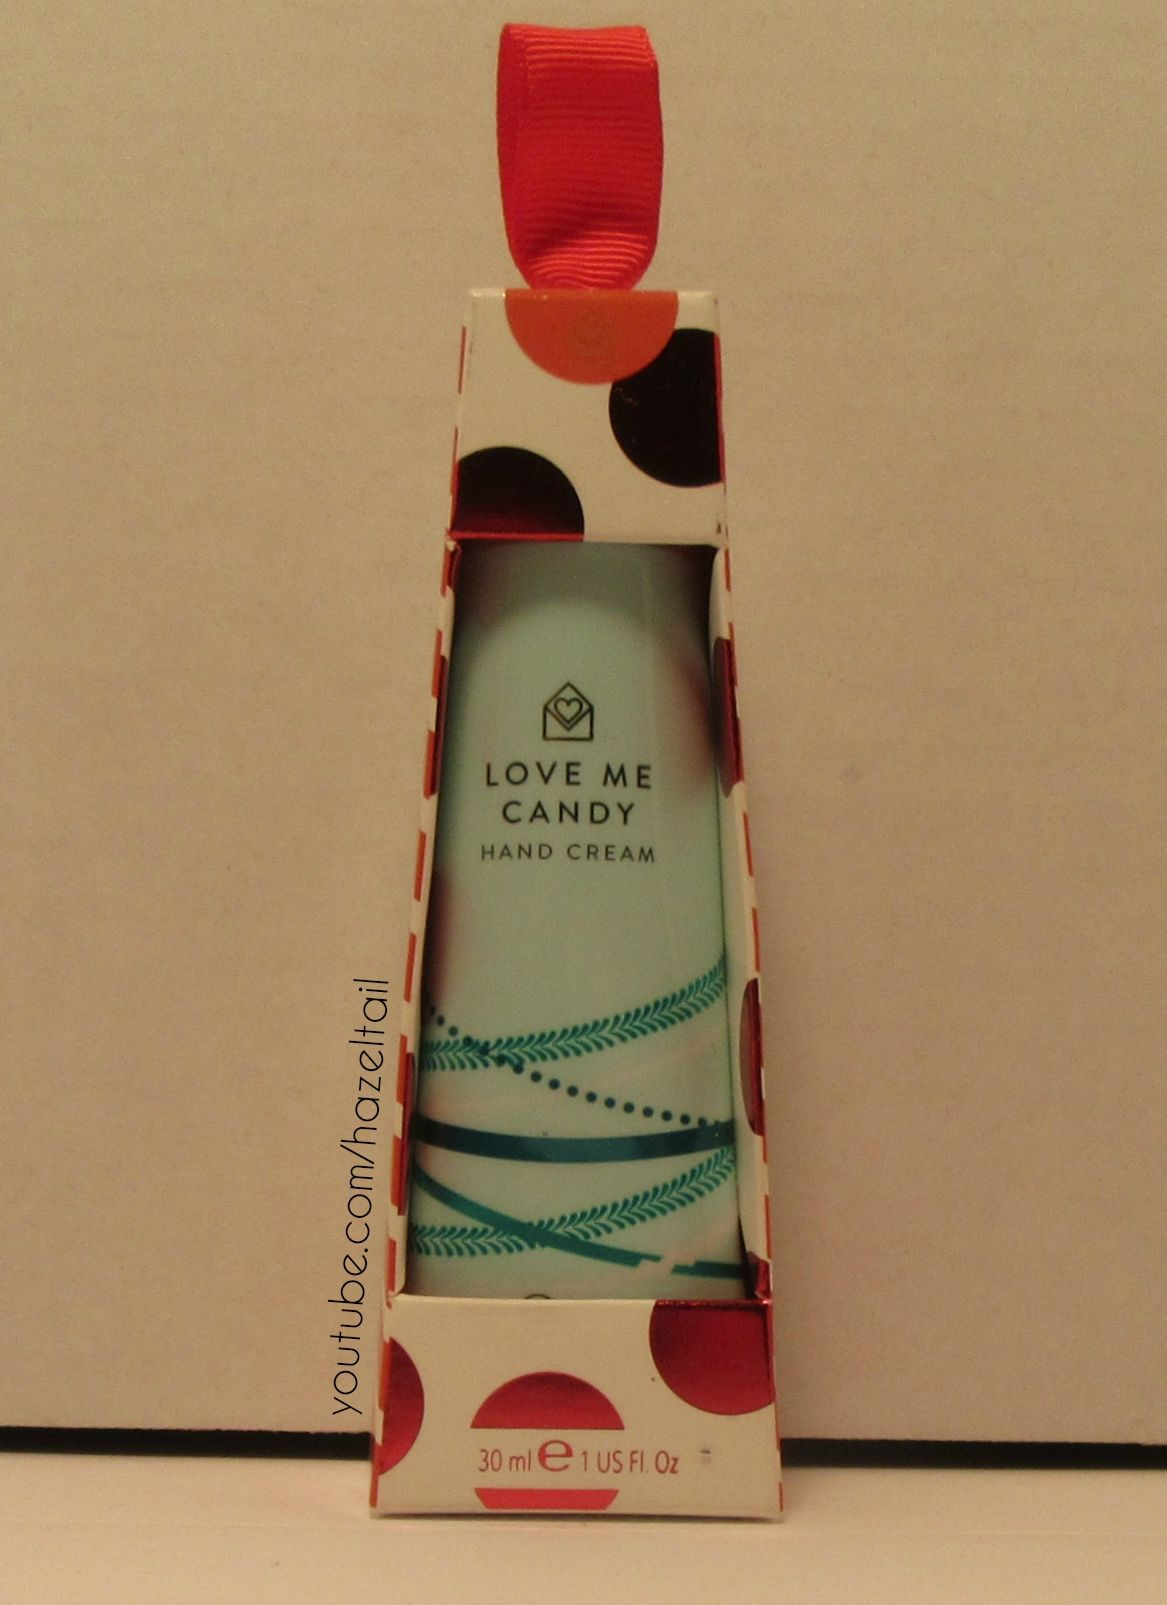 Boots Hand Cream In Love Me Candy Beauty Beautyblog